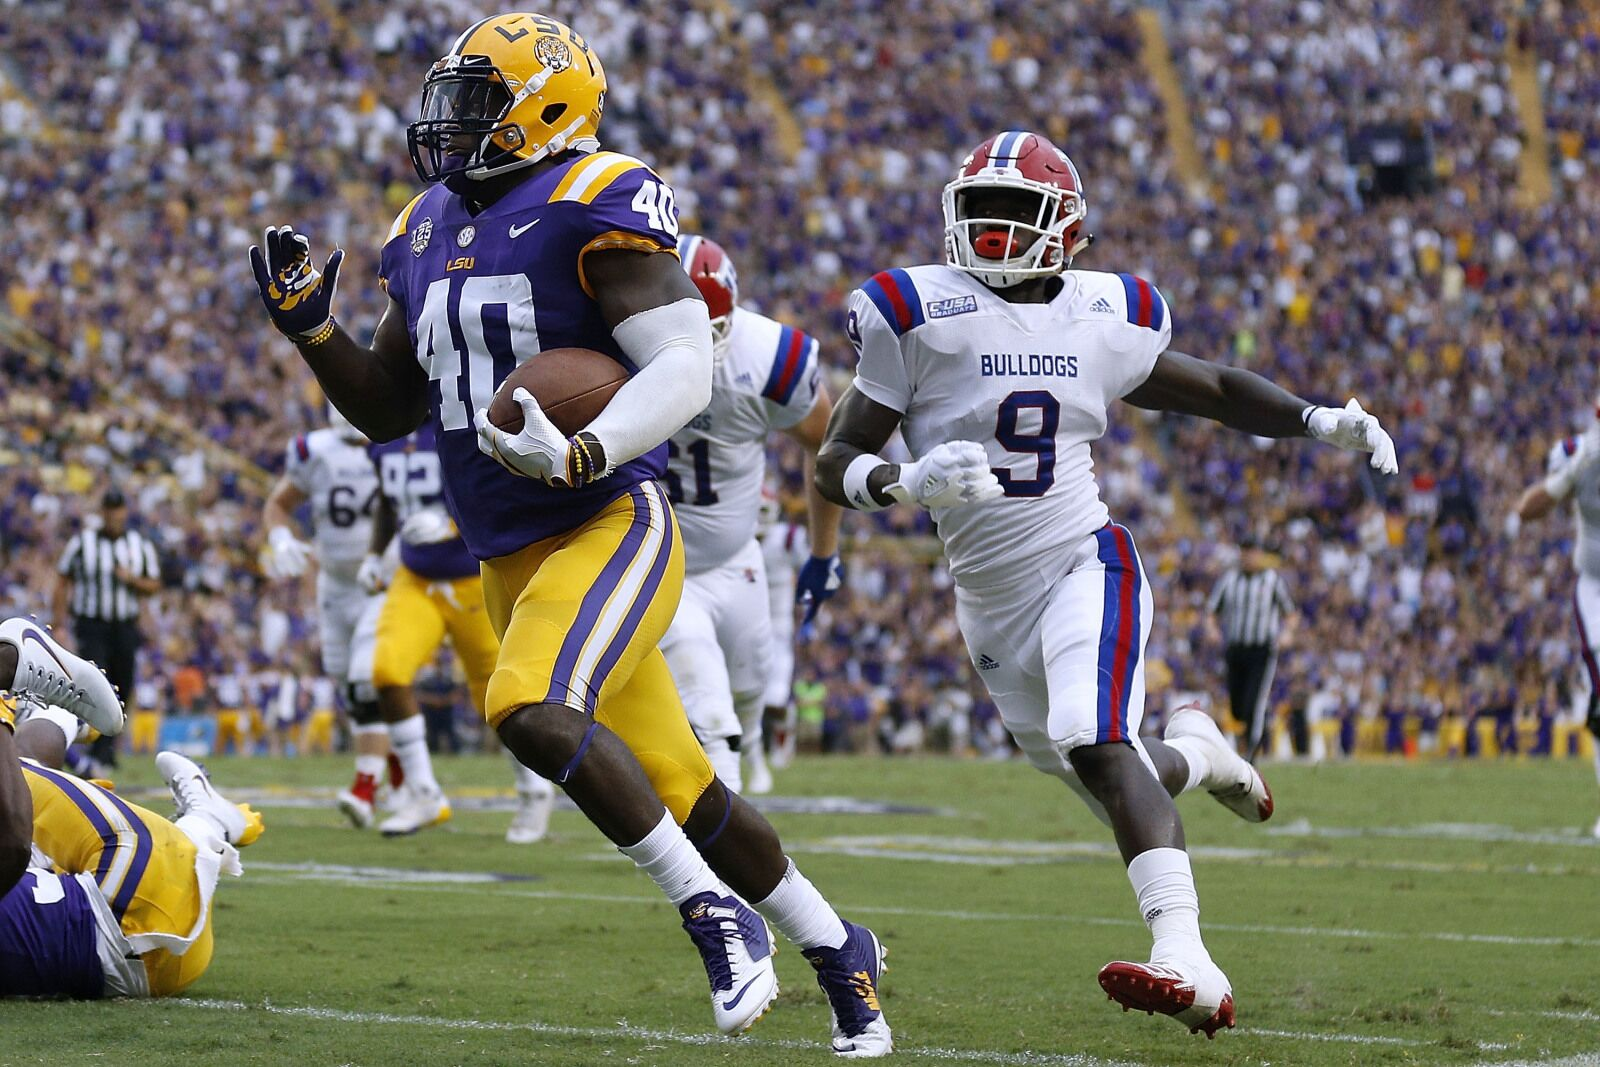 LSU Football: 3 bold predictions vs. Arkansas in Battle for the Boot